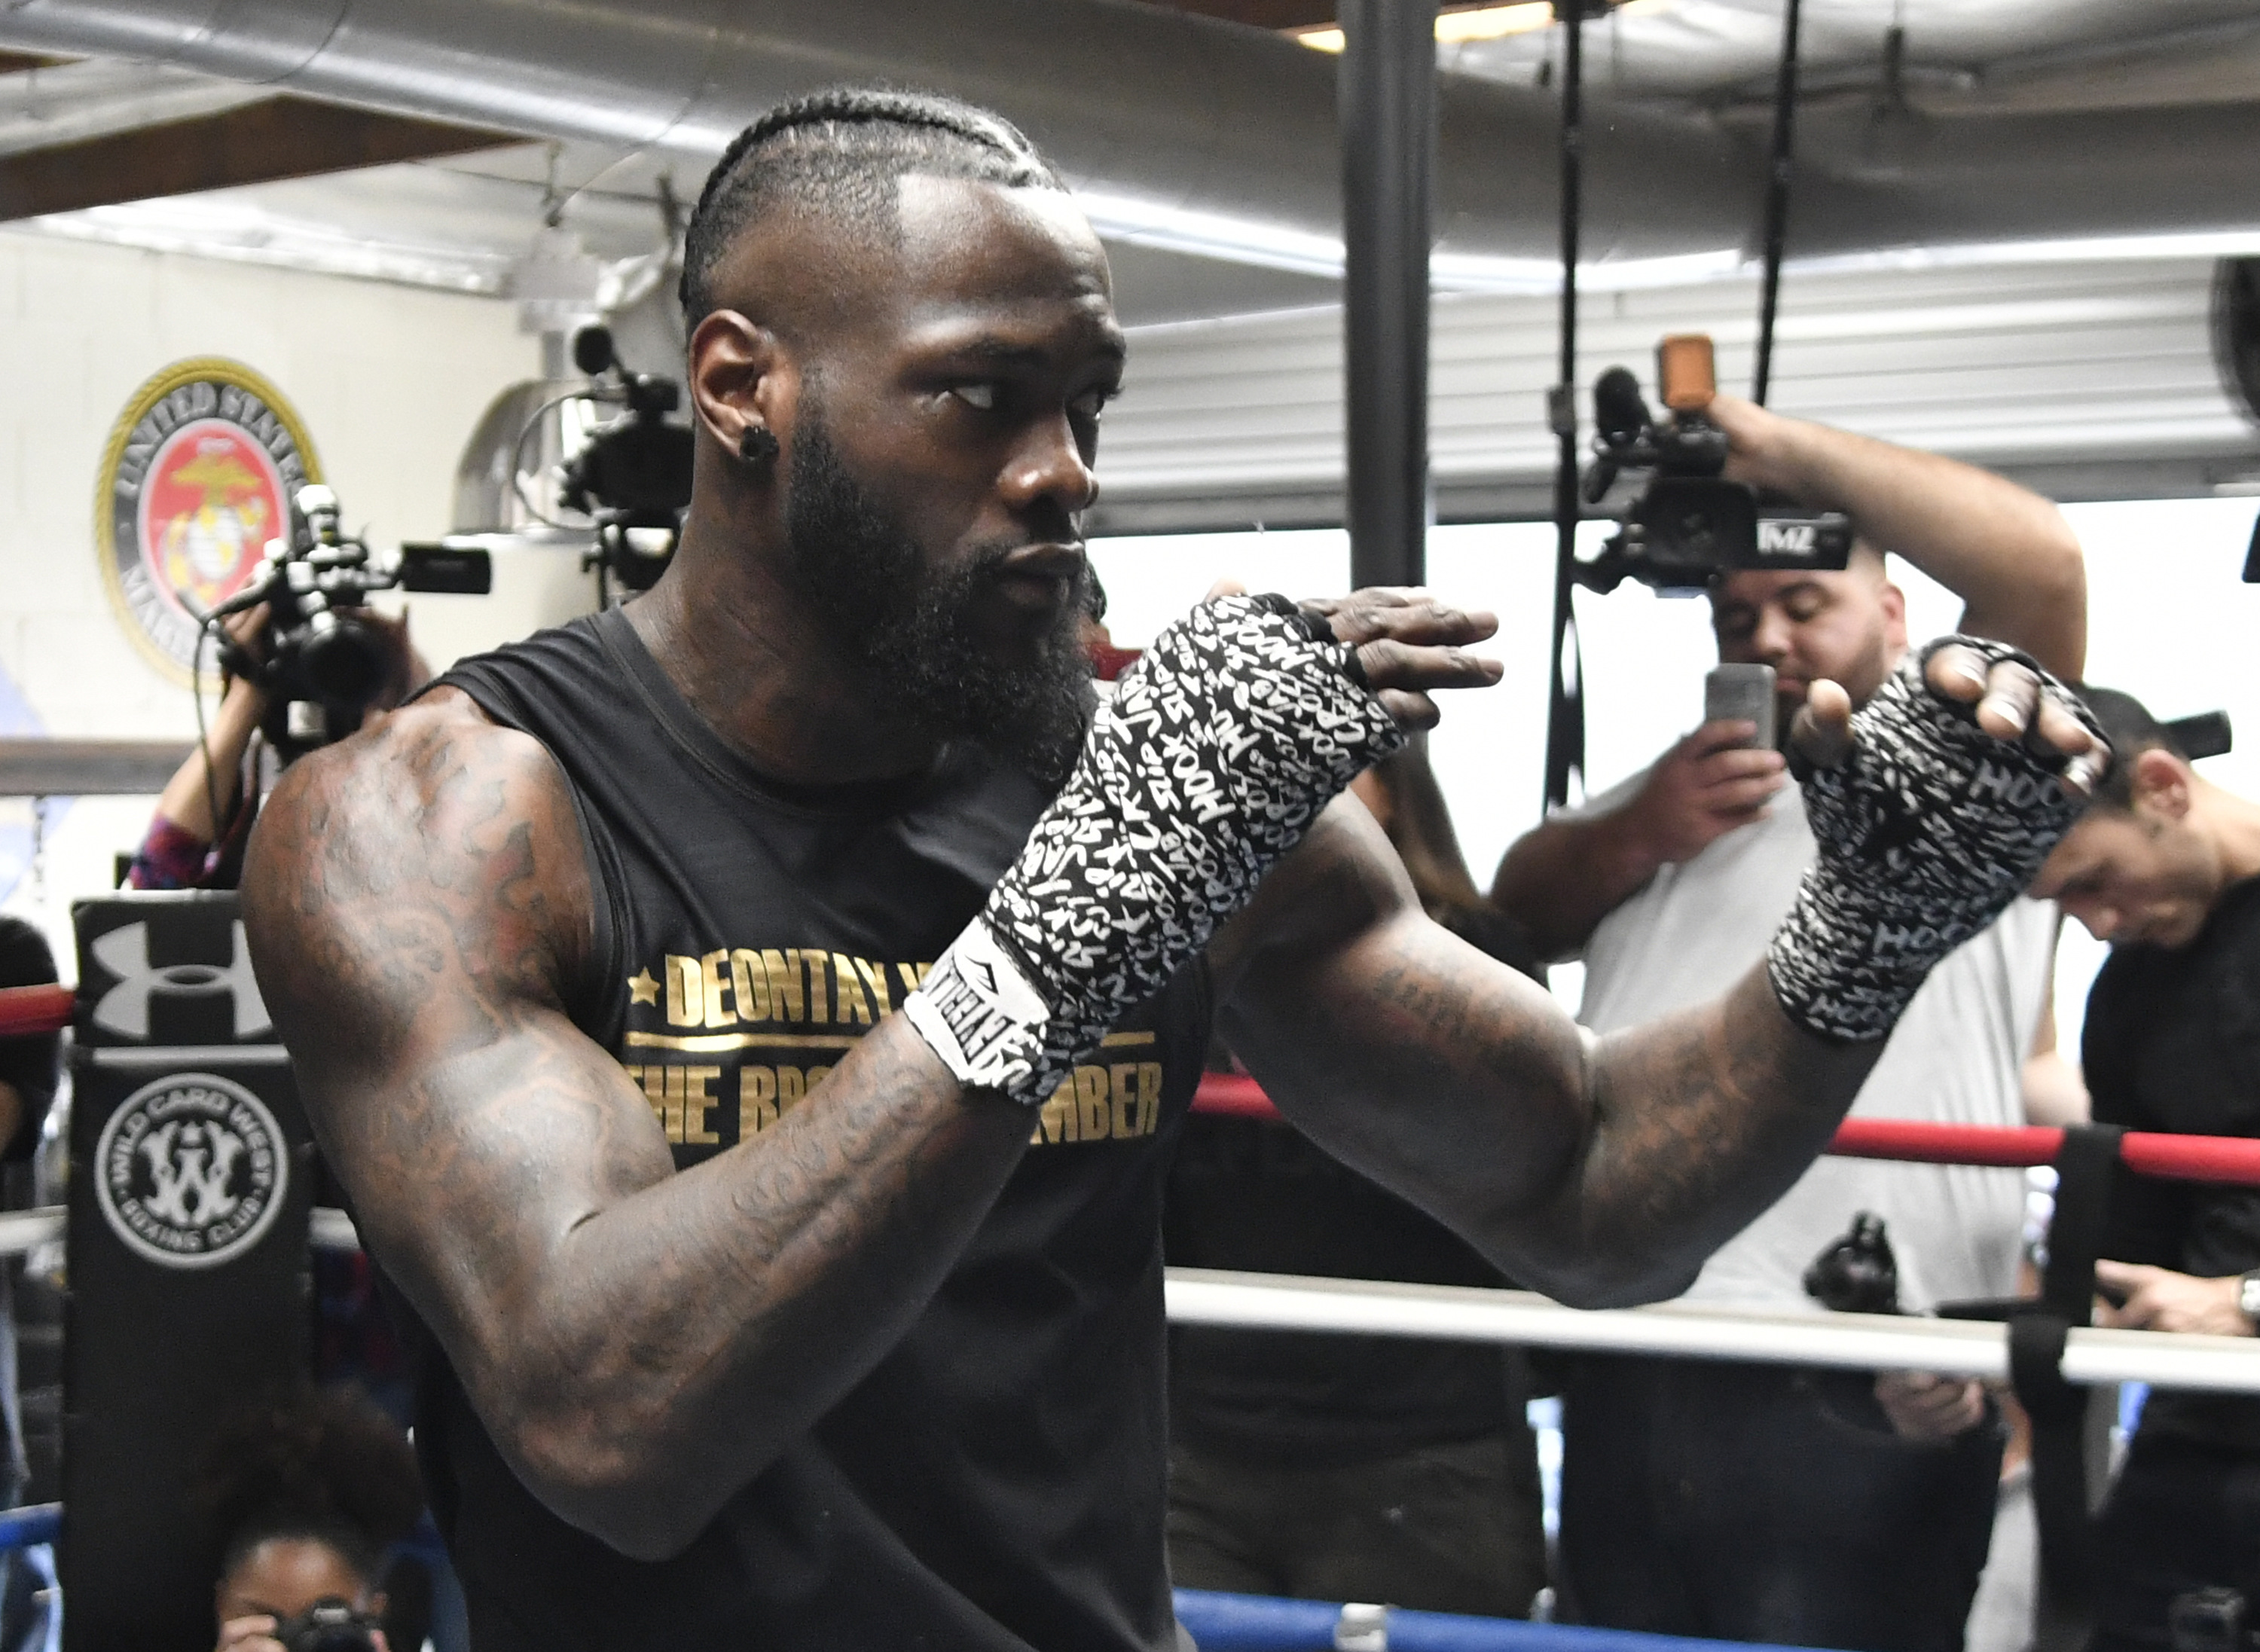 Fury's opponent Deontay Wilder is unbeaten in 40 fights. Credit: PA